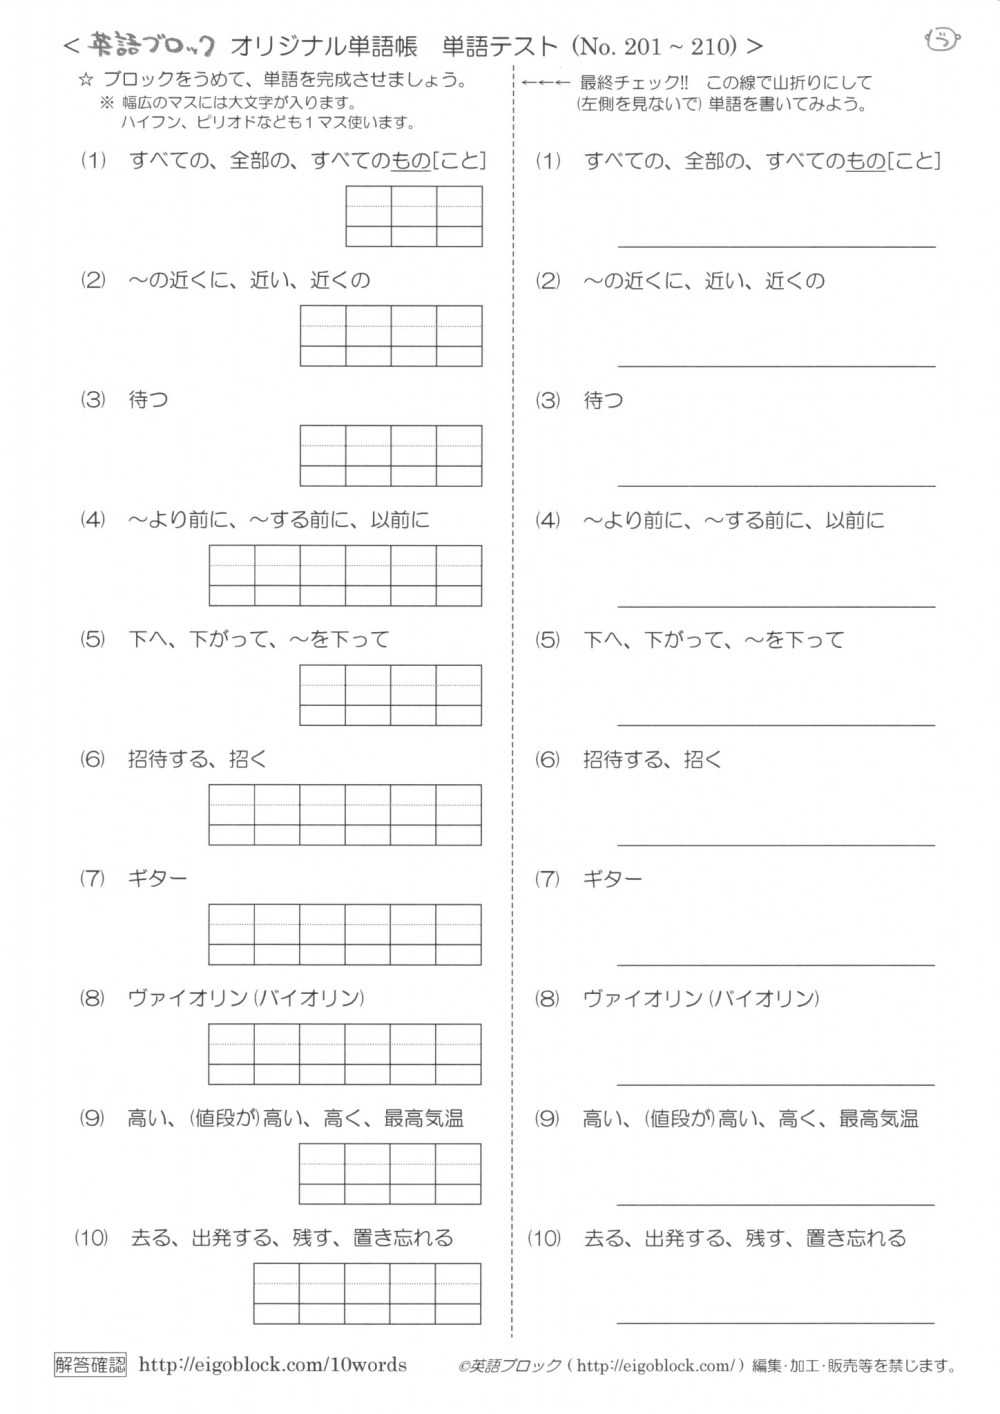 word201to210test